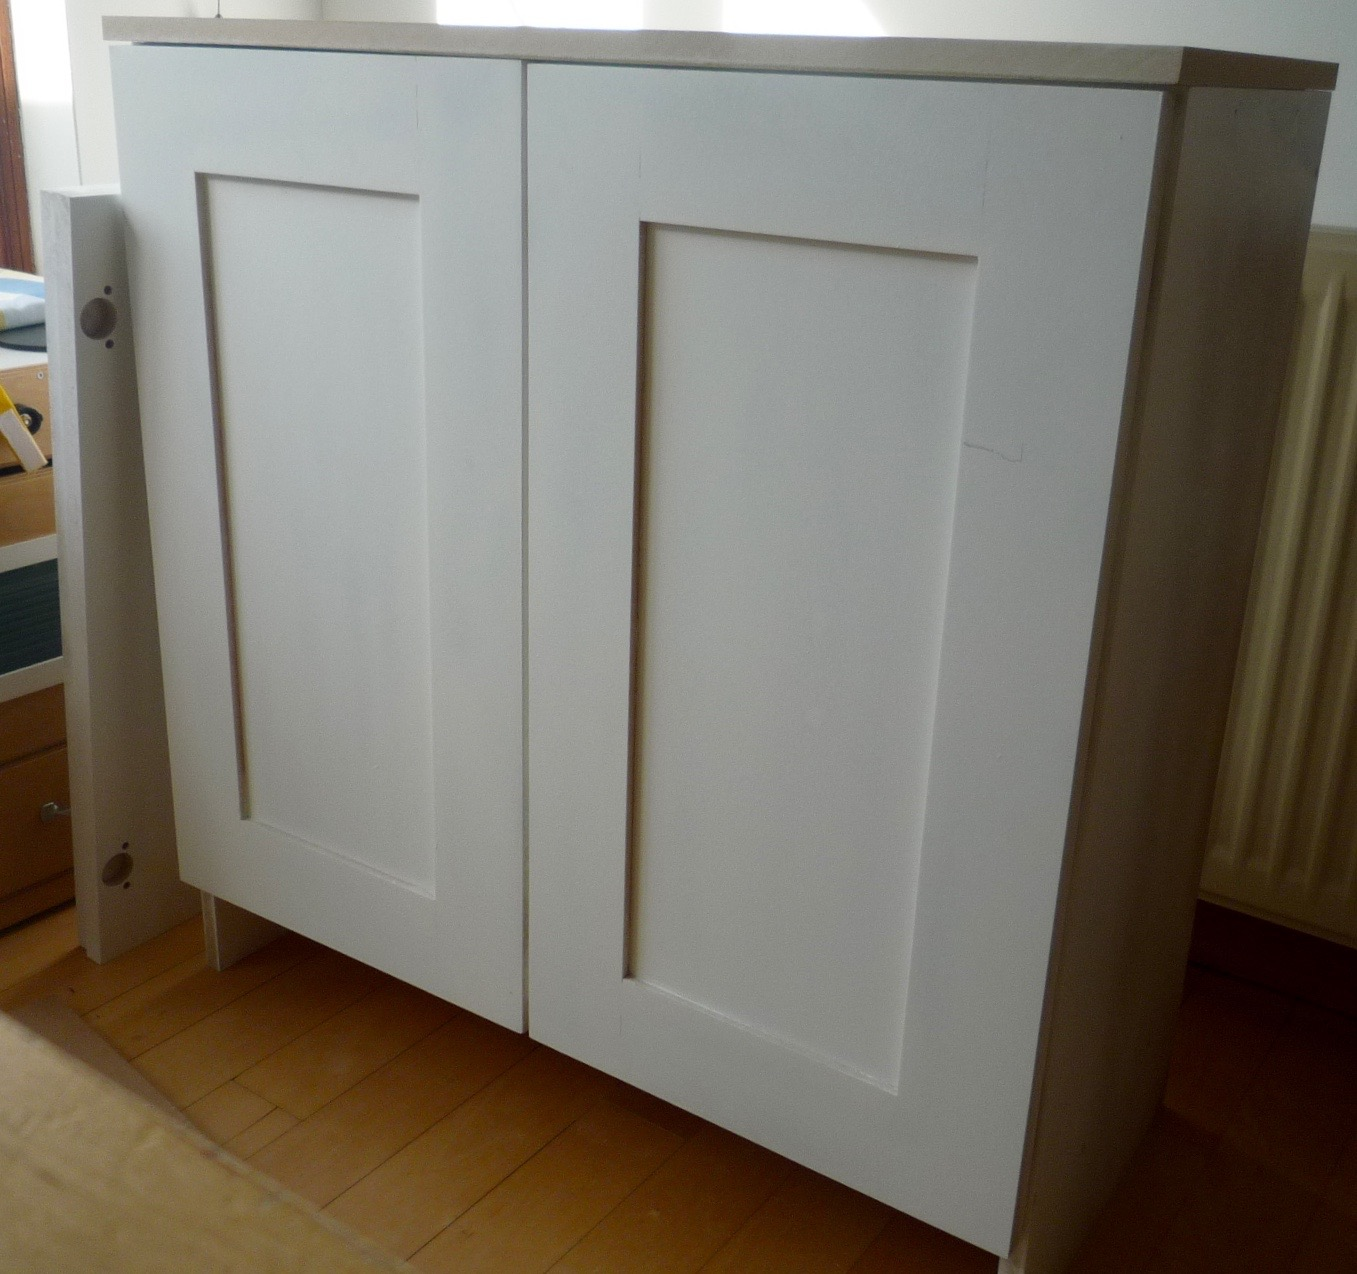 Primed Mdf Cupboards With Shaker Style Doors Part I Diy